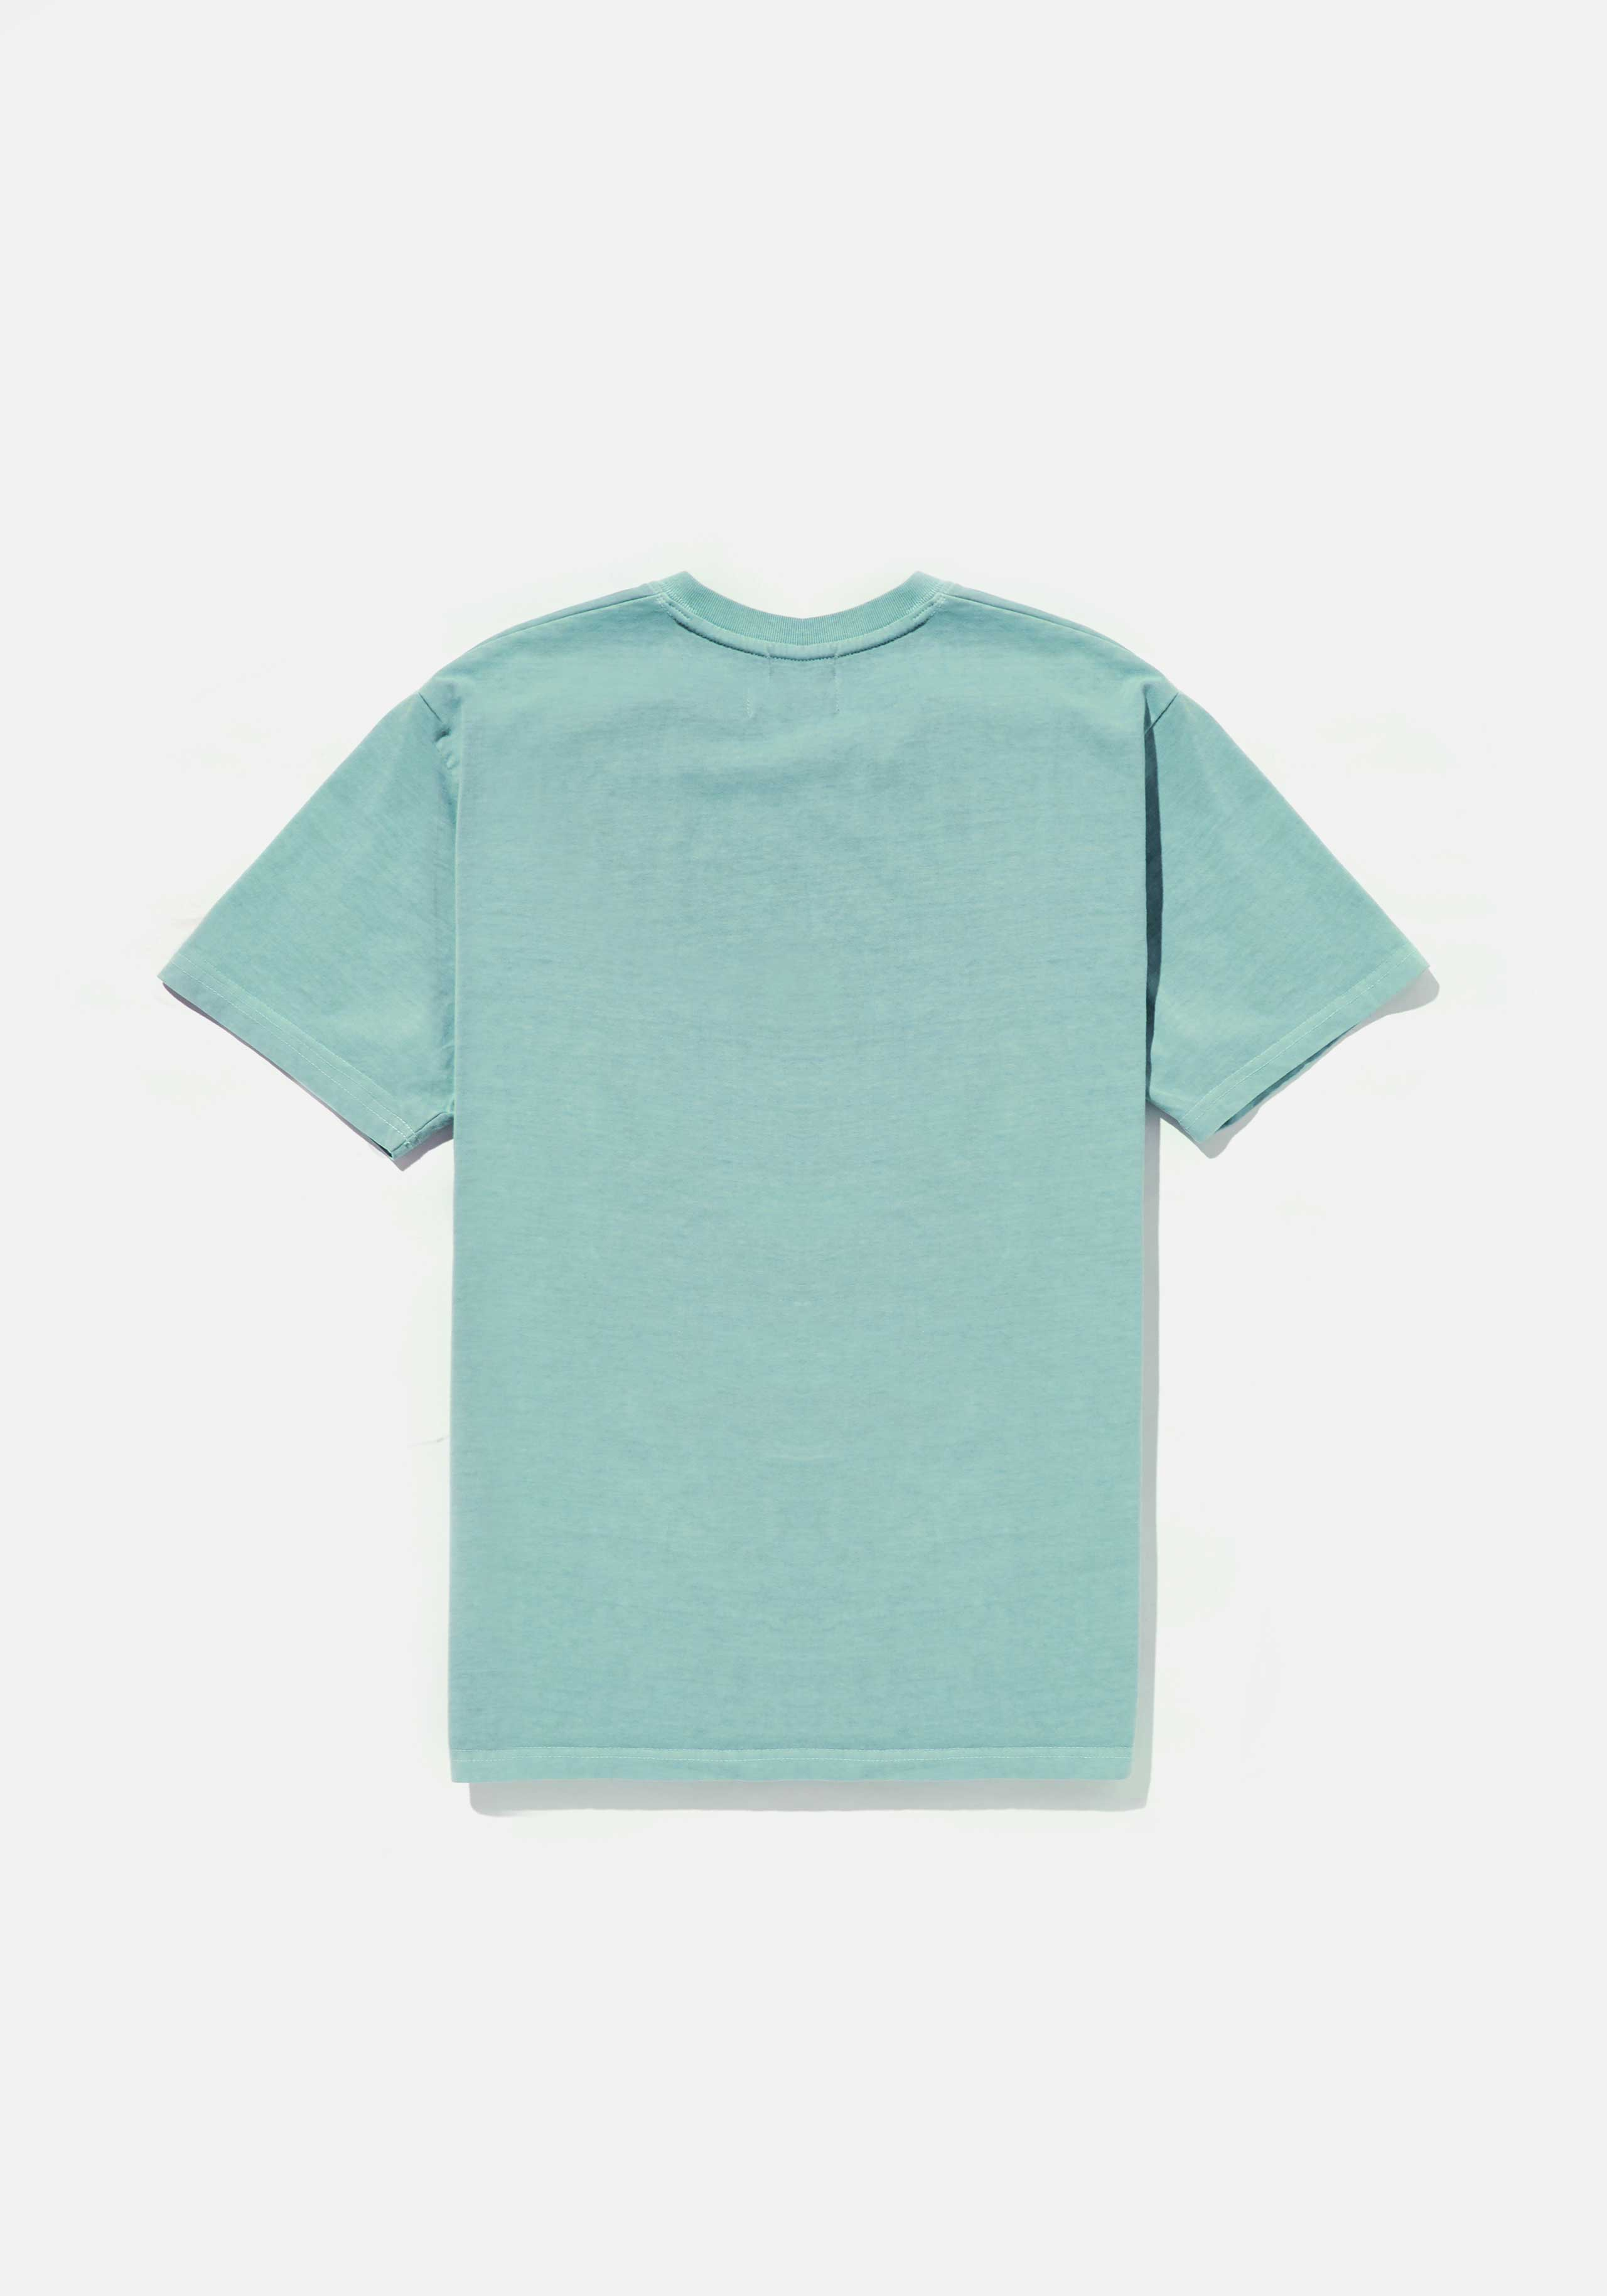 mki pigment dyed tee 2